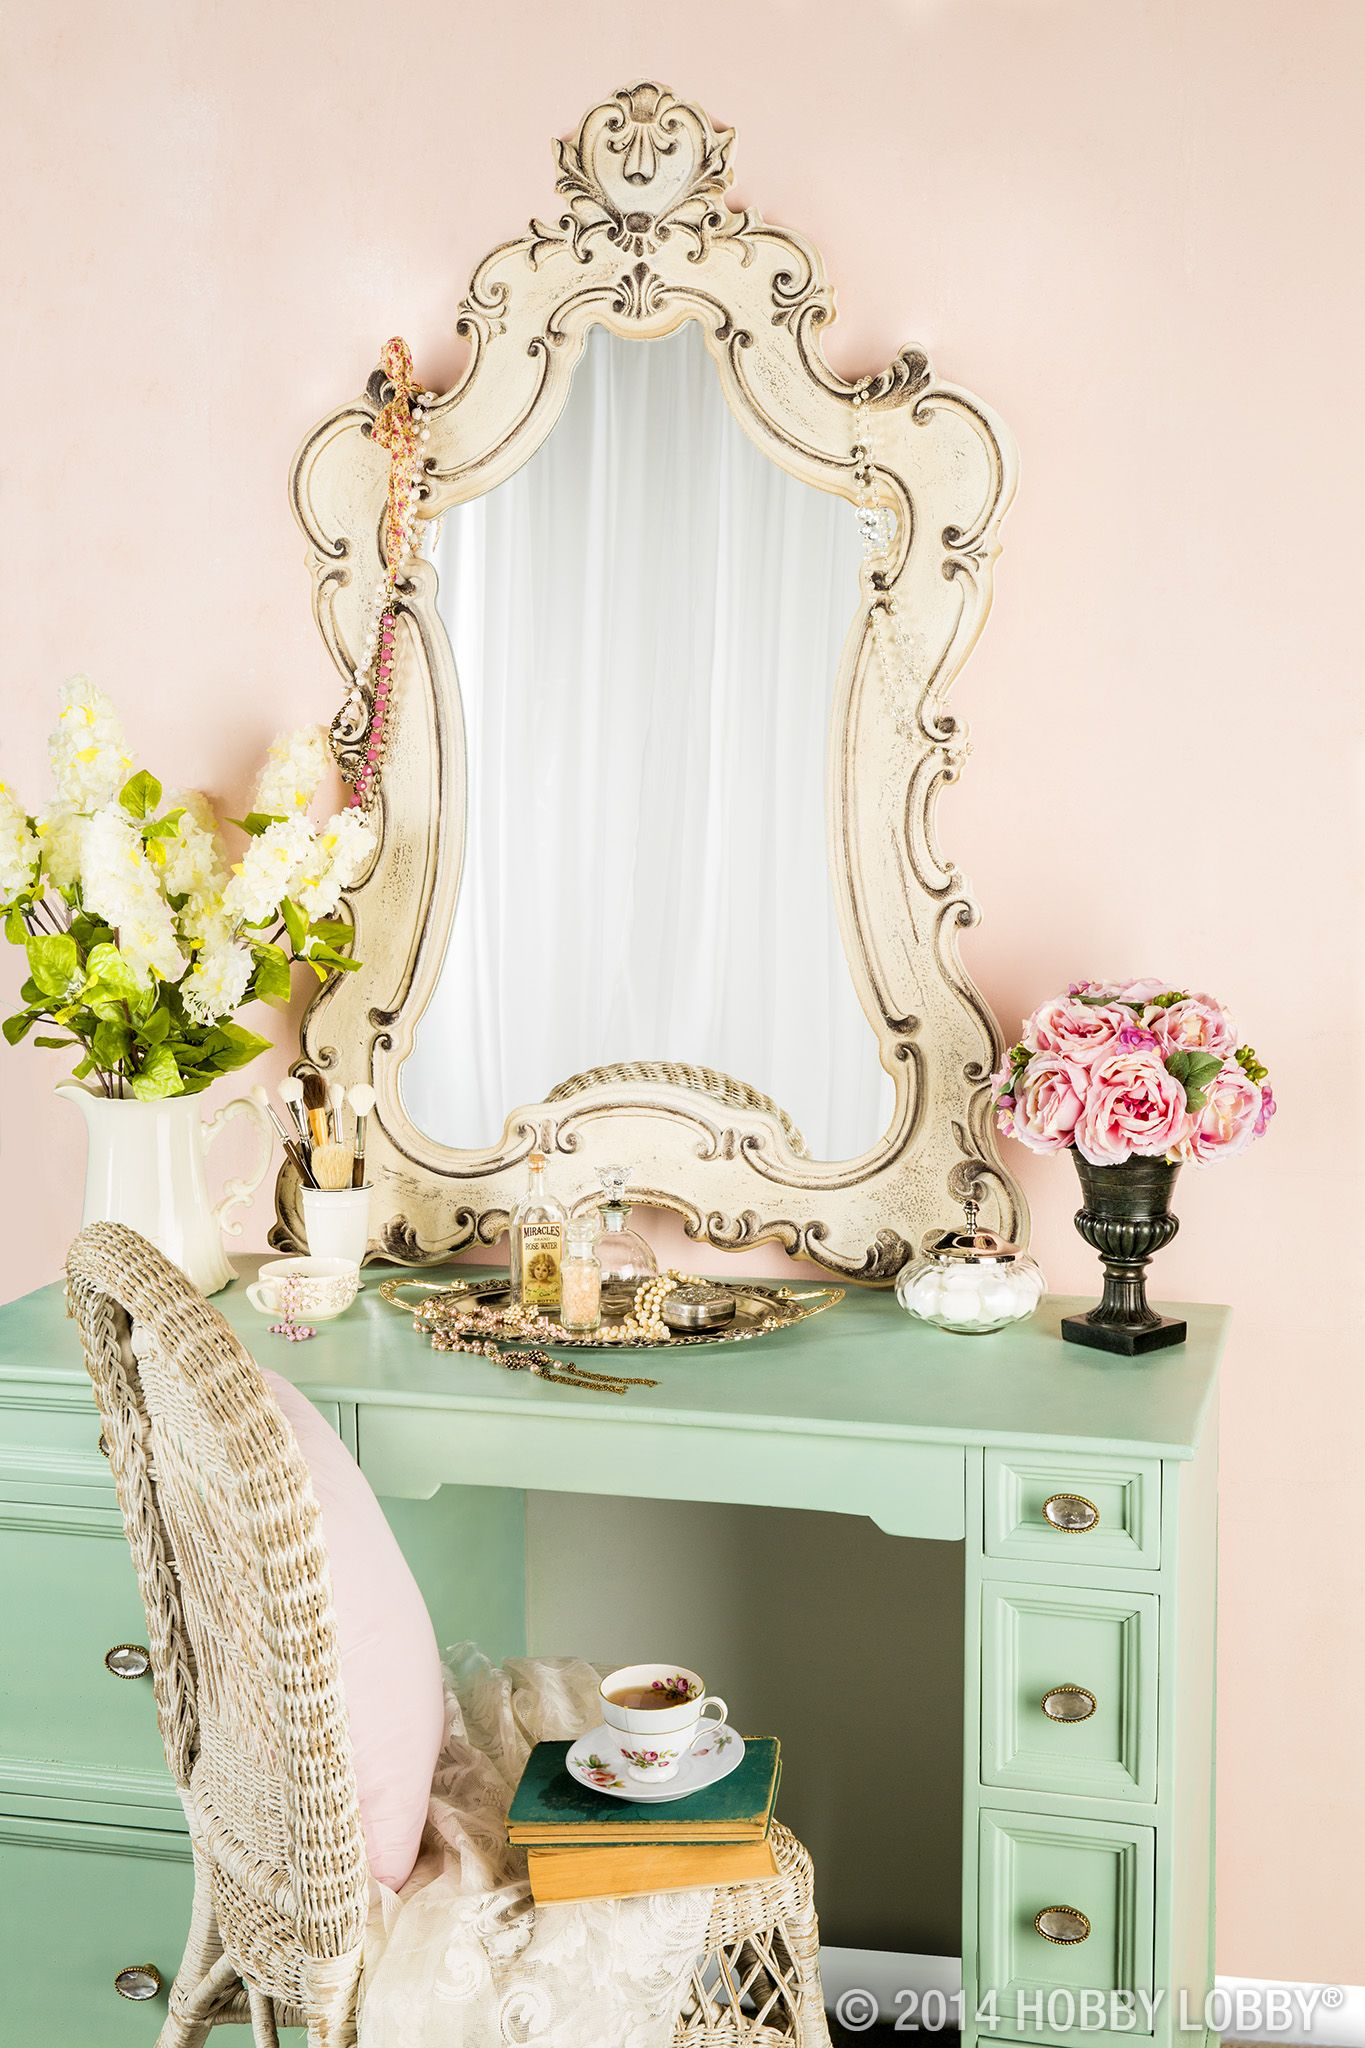 Beautiful Mirrors set up your own vanity set with a beautiful mirror that